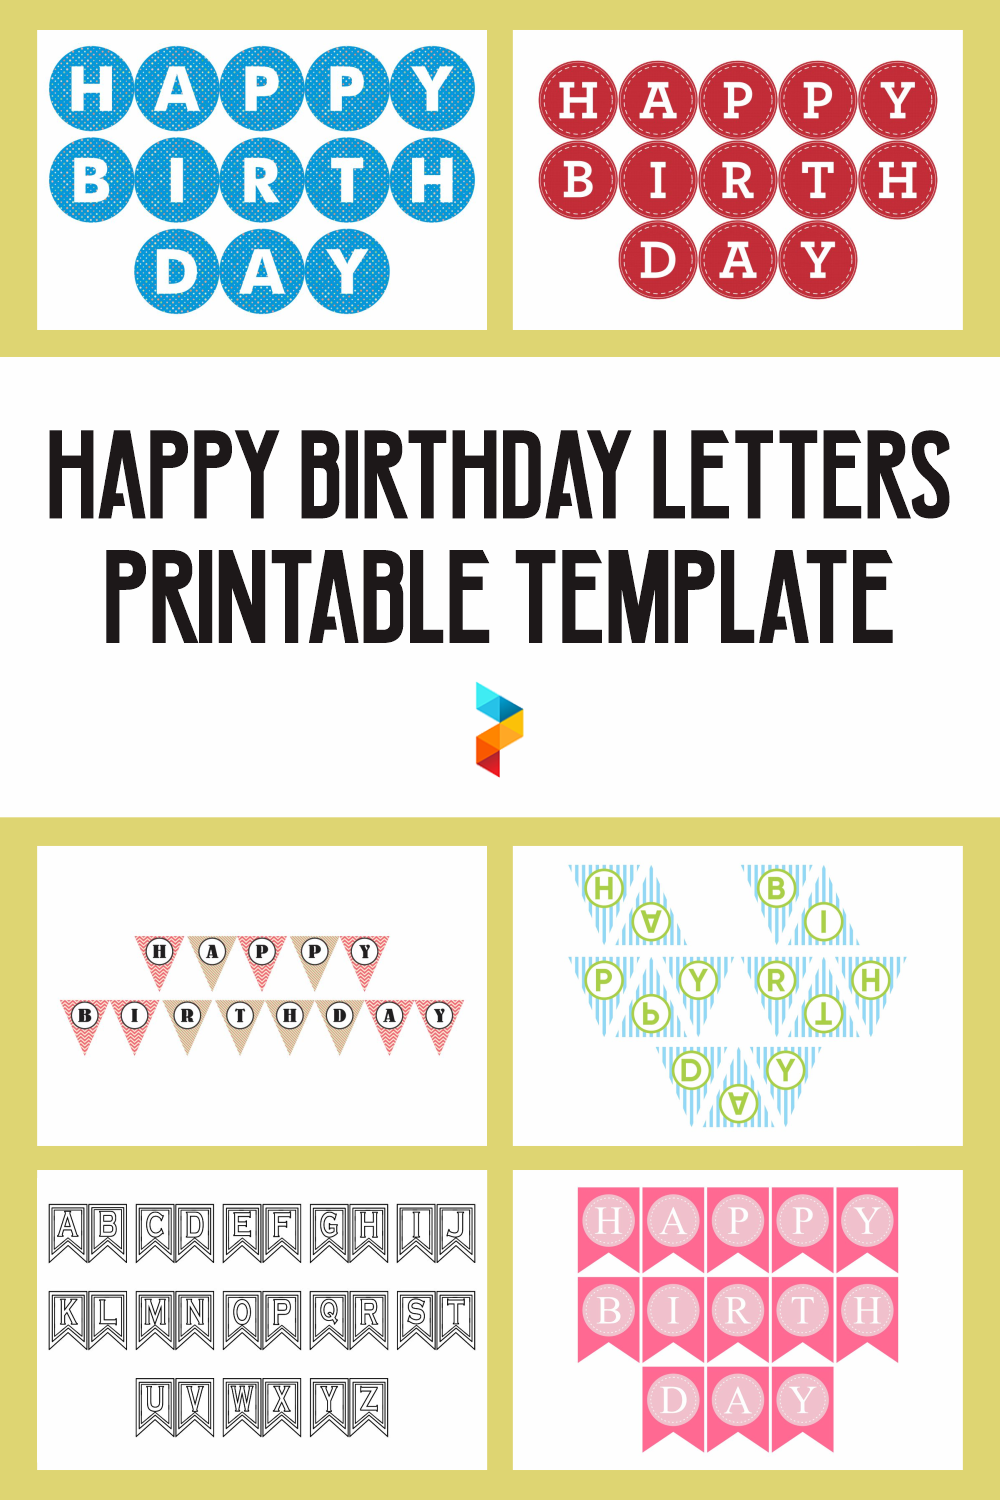 Happy Birthday Letters Printable Template